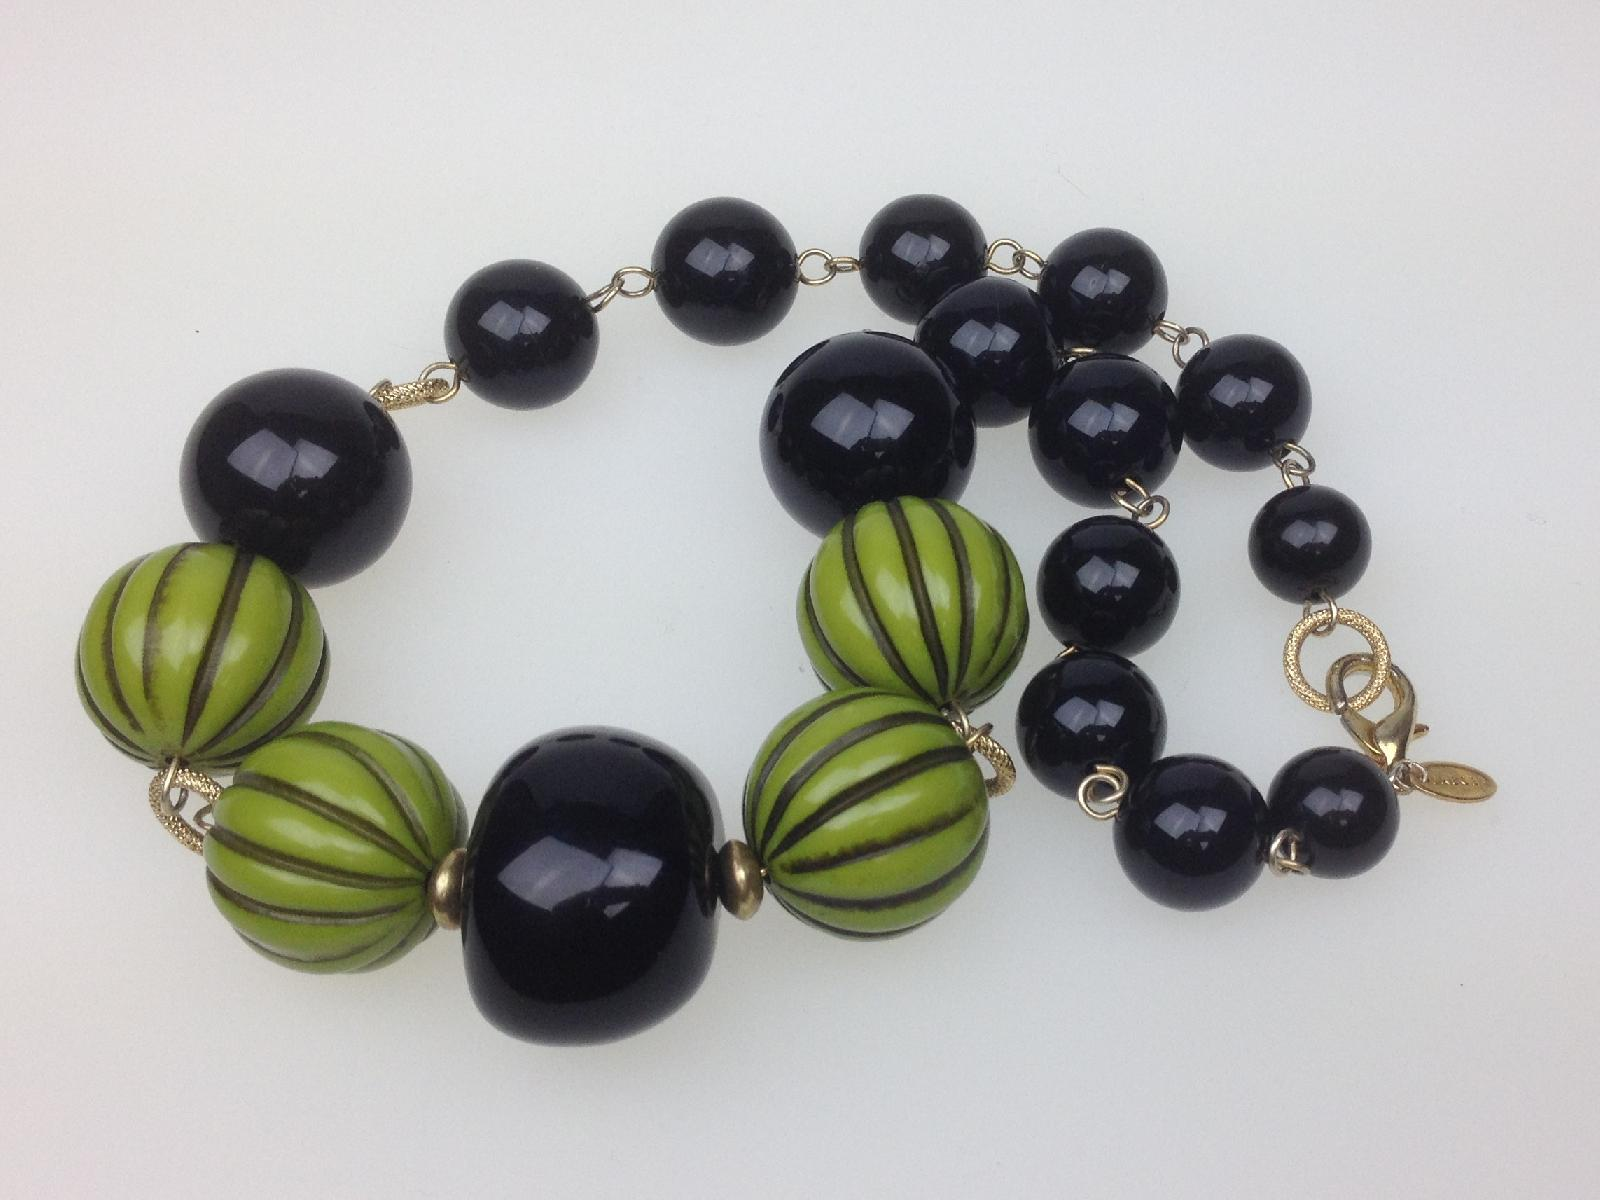 Stunning Signed Jaeger Chunky Black and Green Striped Bead Necklace